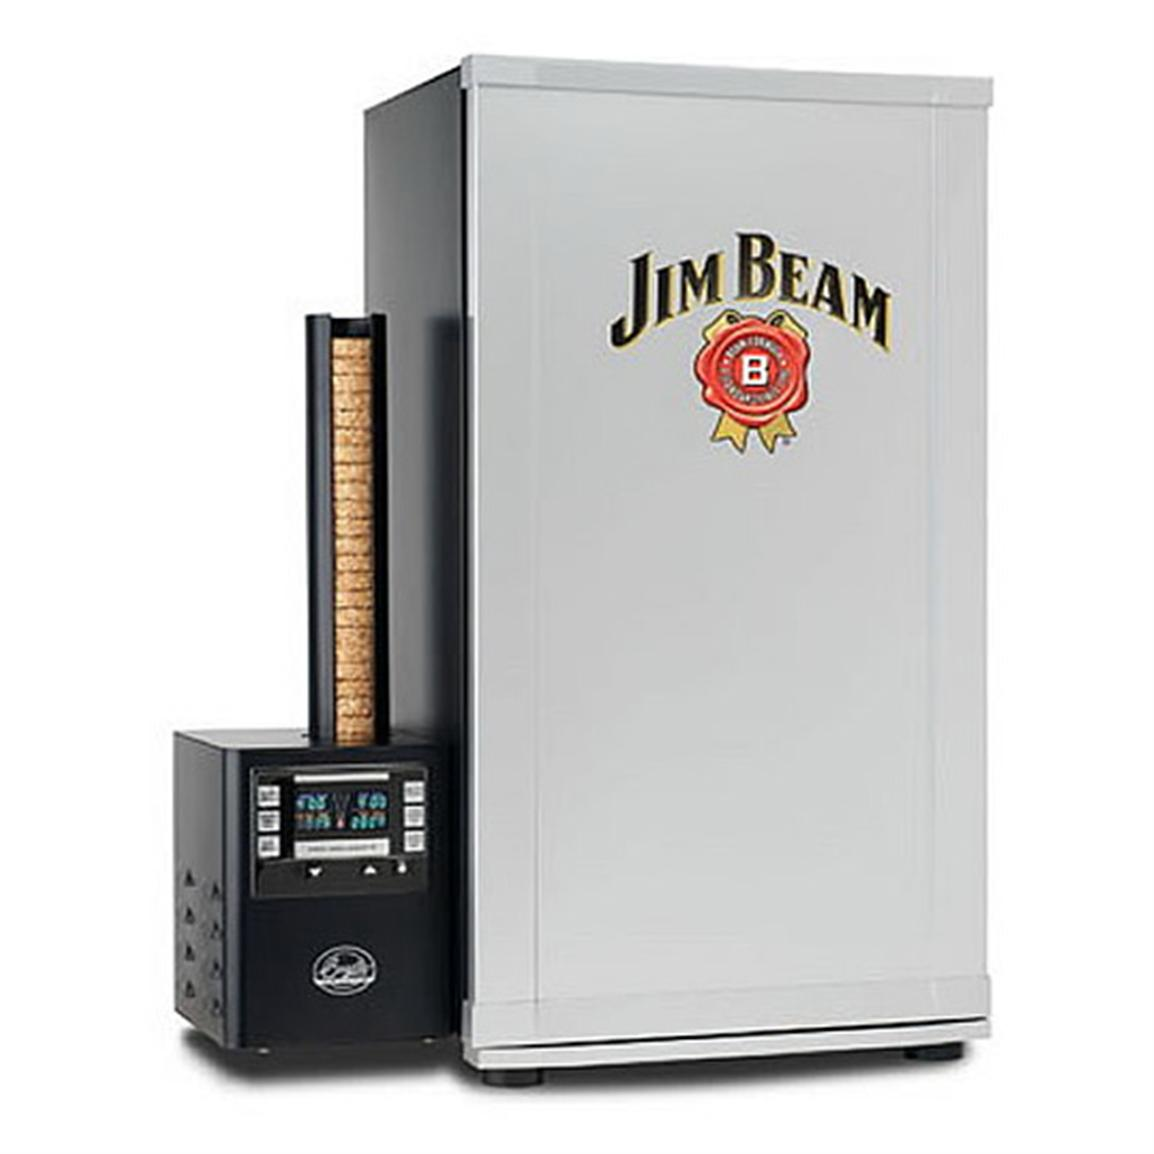 Bradley® Jim Beam 4-rack Digital Smoker